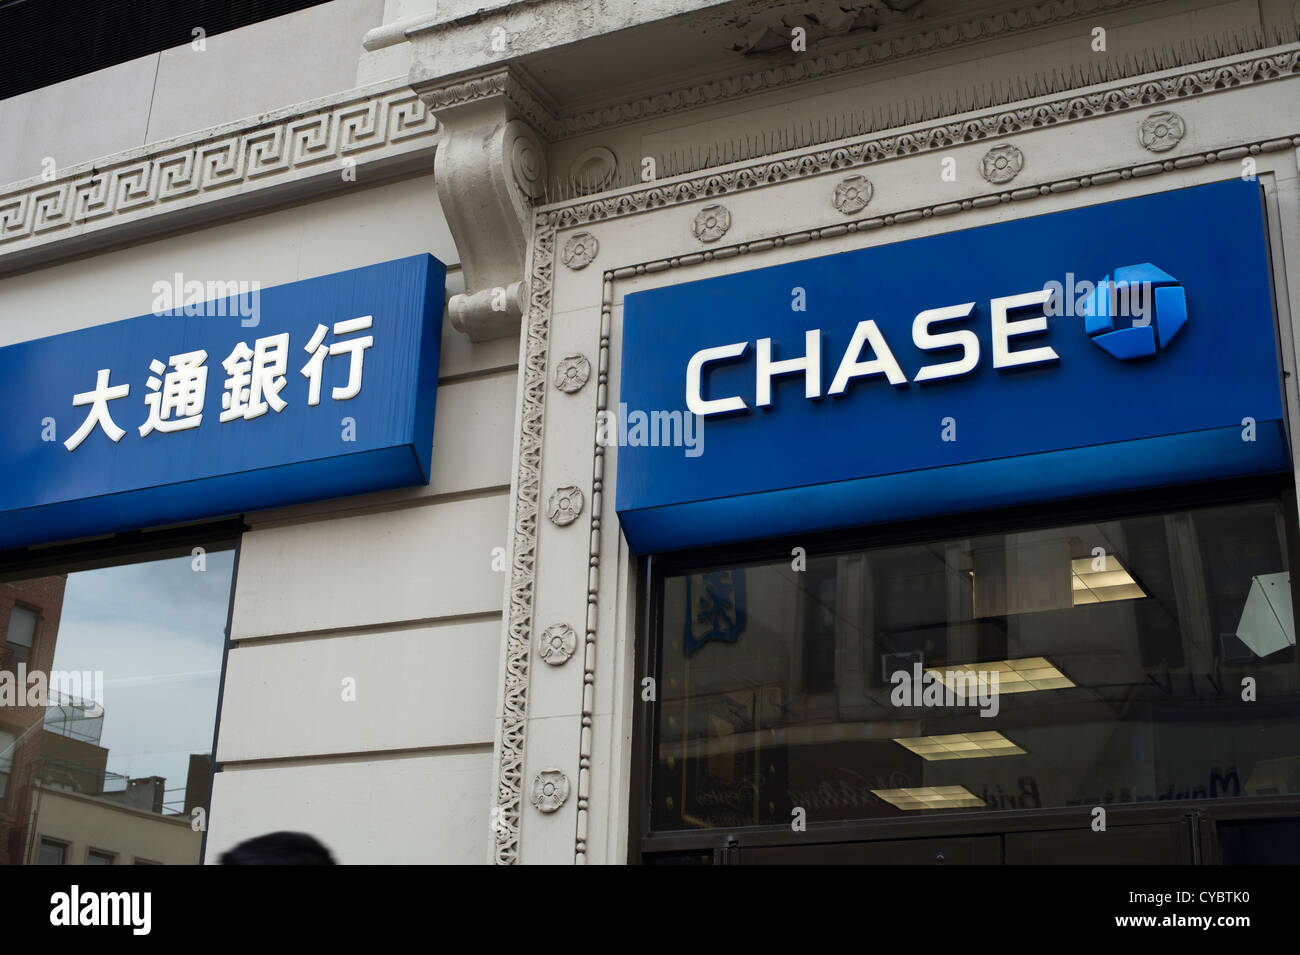 A JPMorgan Chase Bank Branch Sign Seen In Chinese And English In Chinatown  In New York